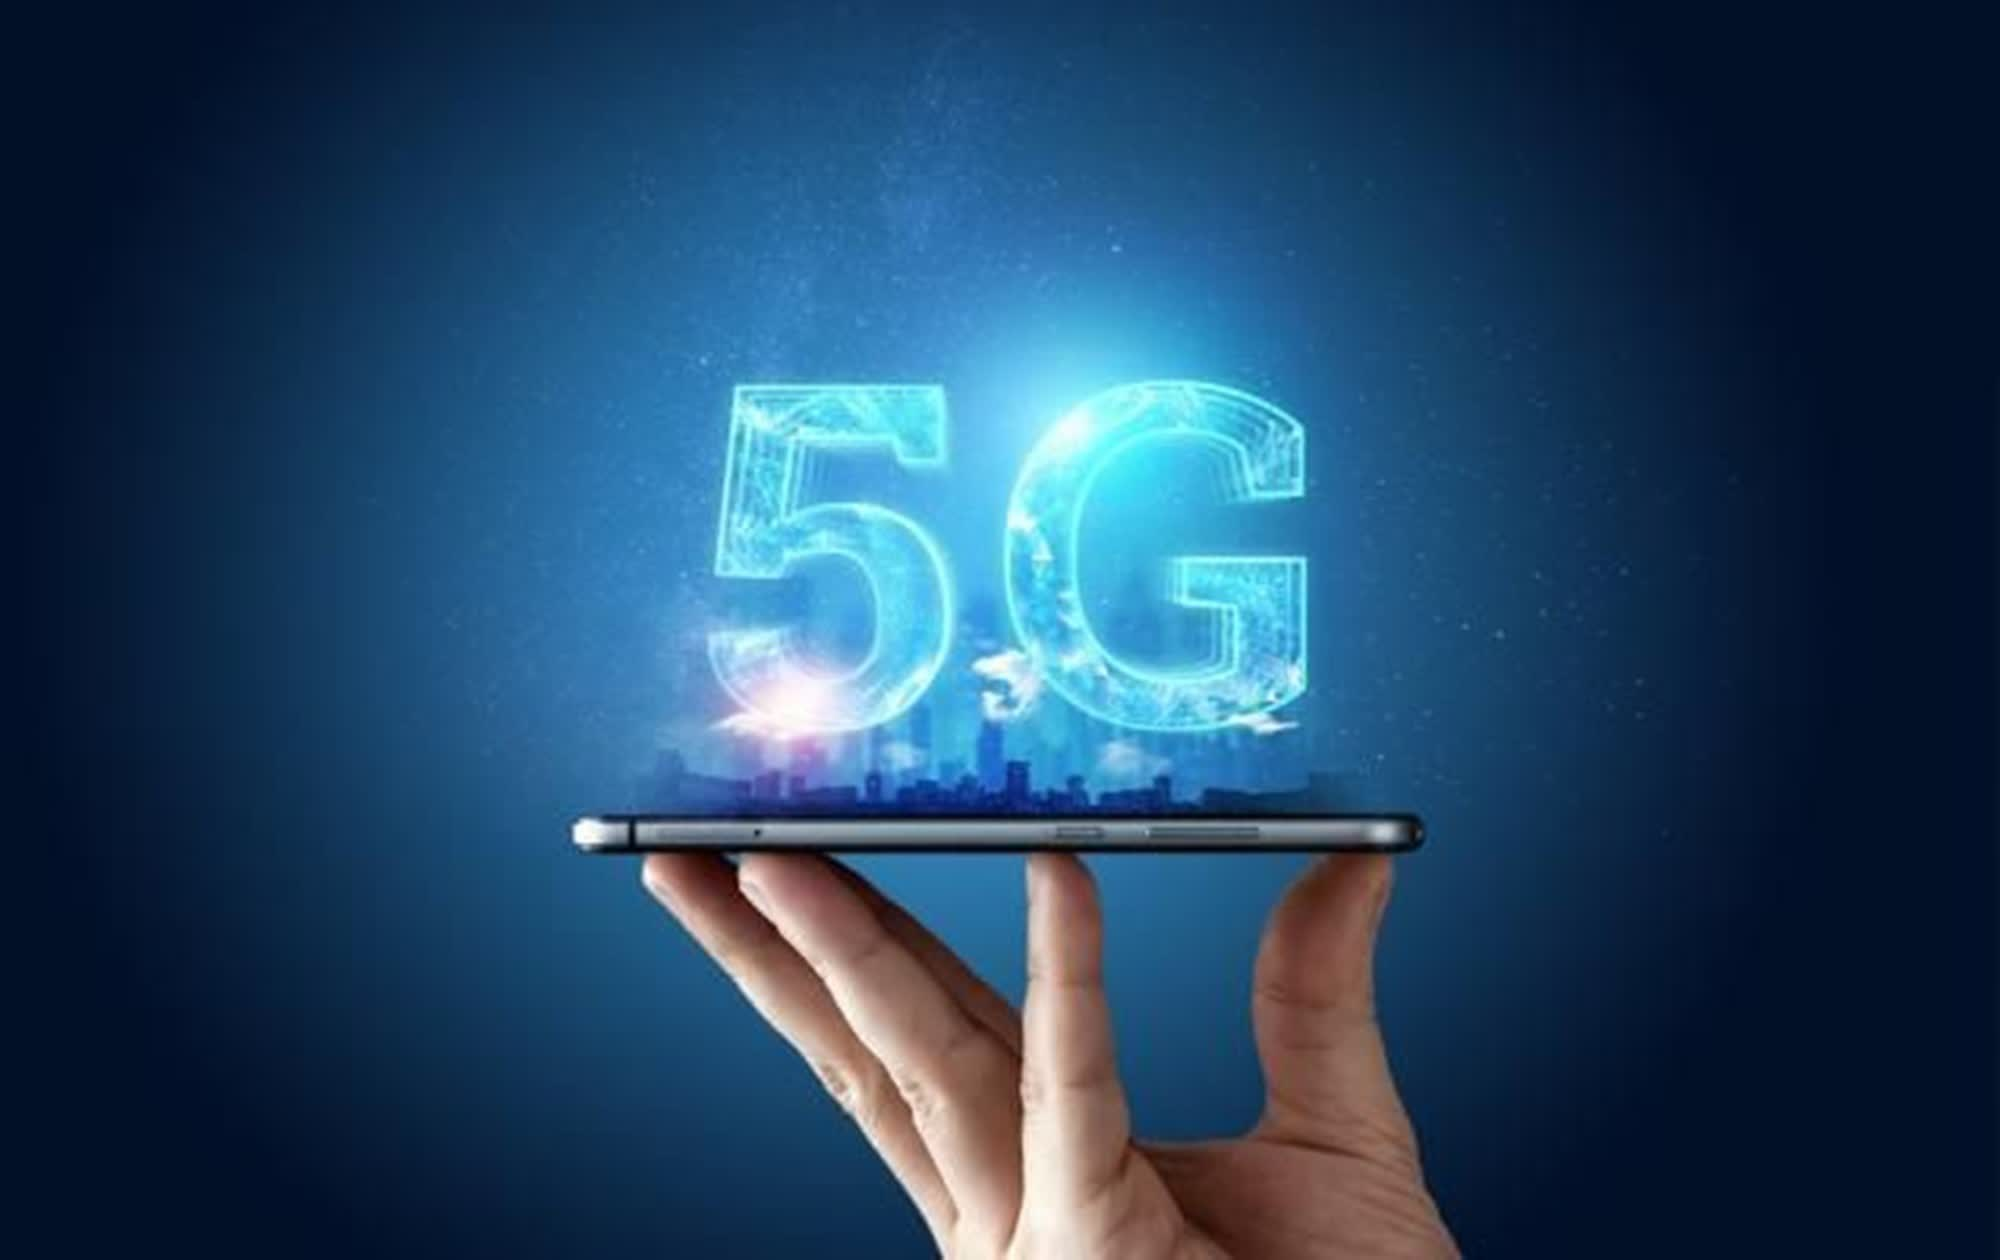 Verizon is teaming up with Nokia to bring 5G latency capabilities to enterprises.